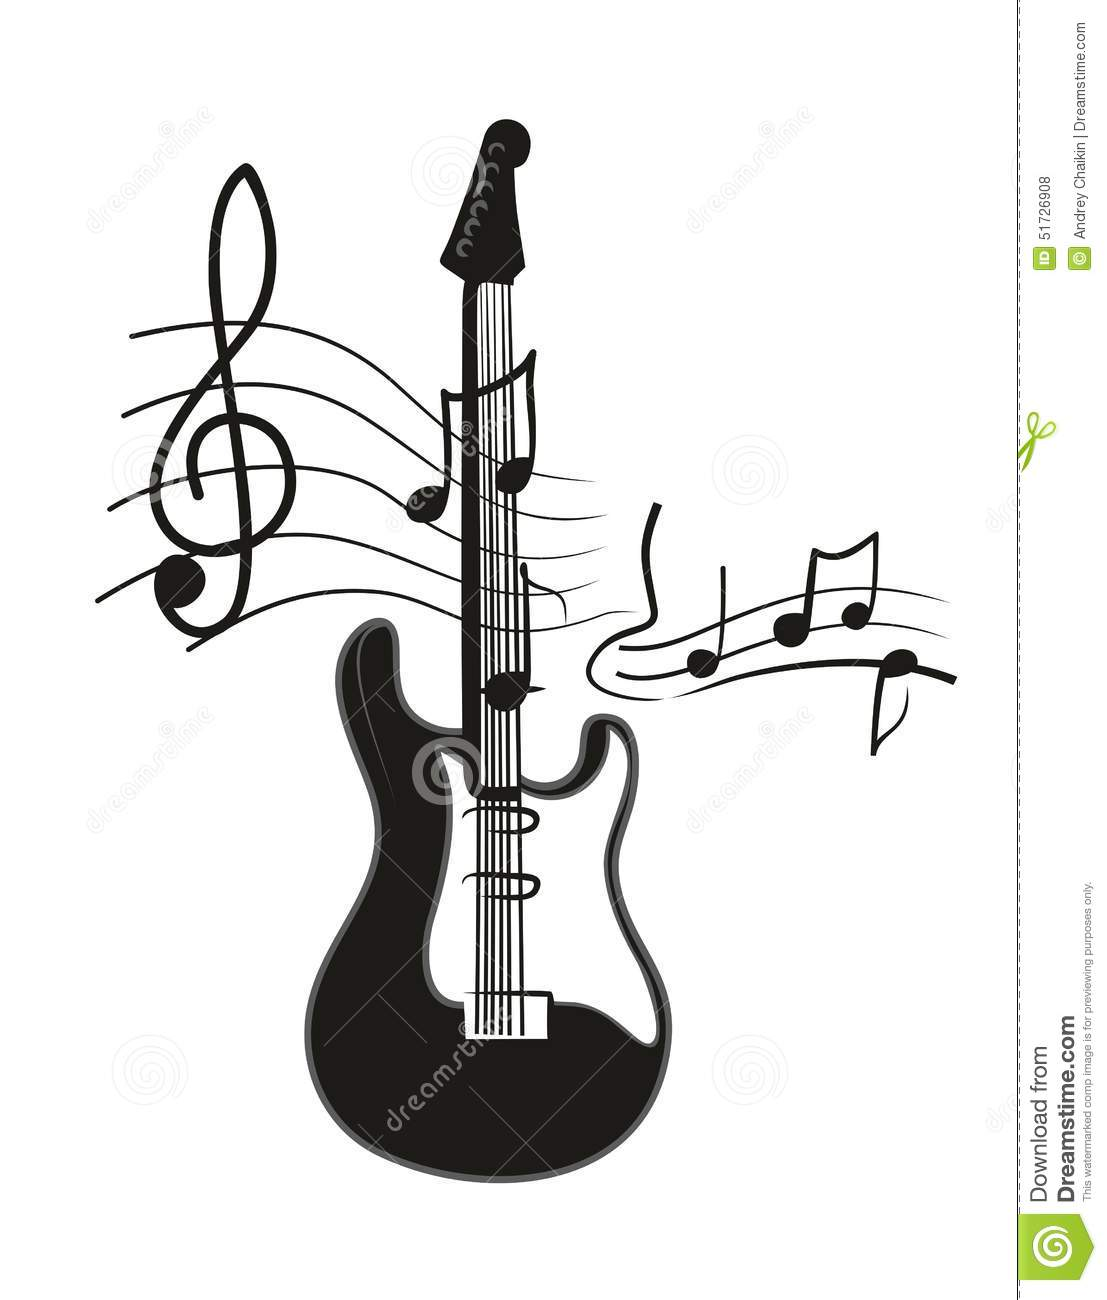 Electric guitar stock vector. Illustration of notes